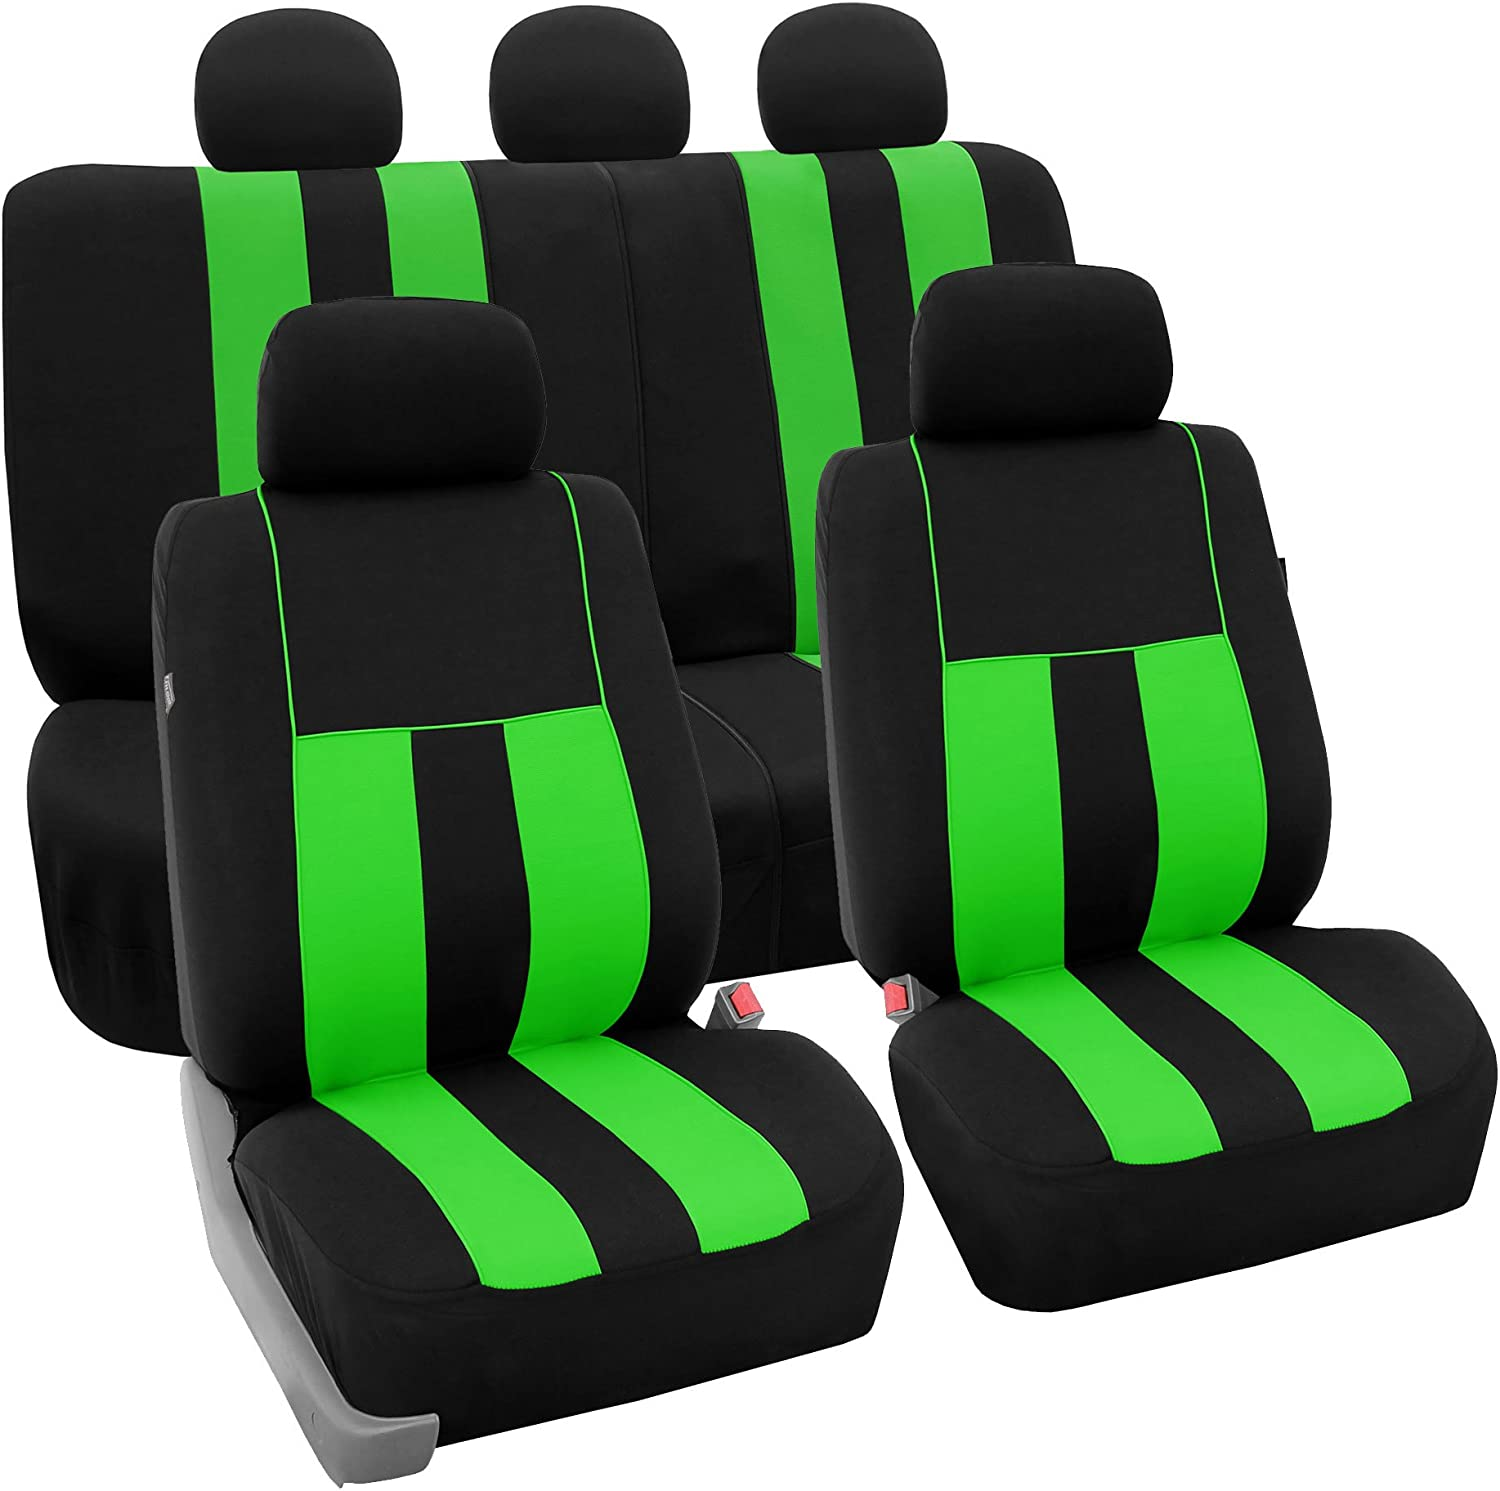 FH Group FB036GREEN115 Seat Cover Airbag Compatible and Split Bench Green